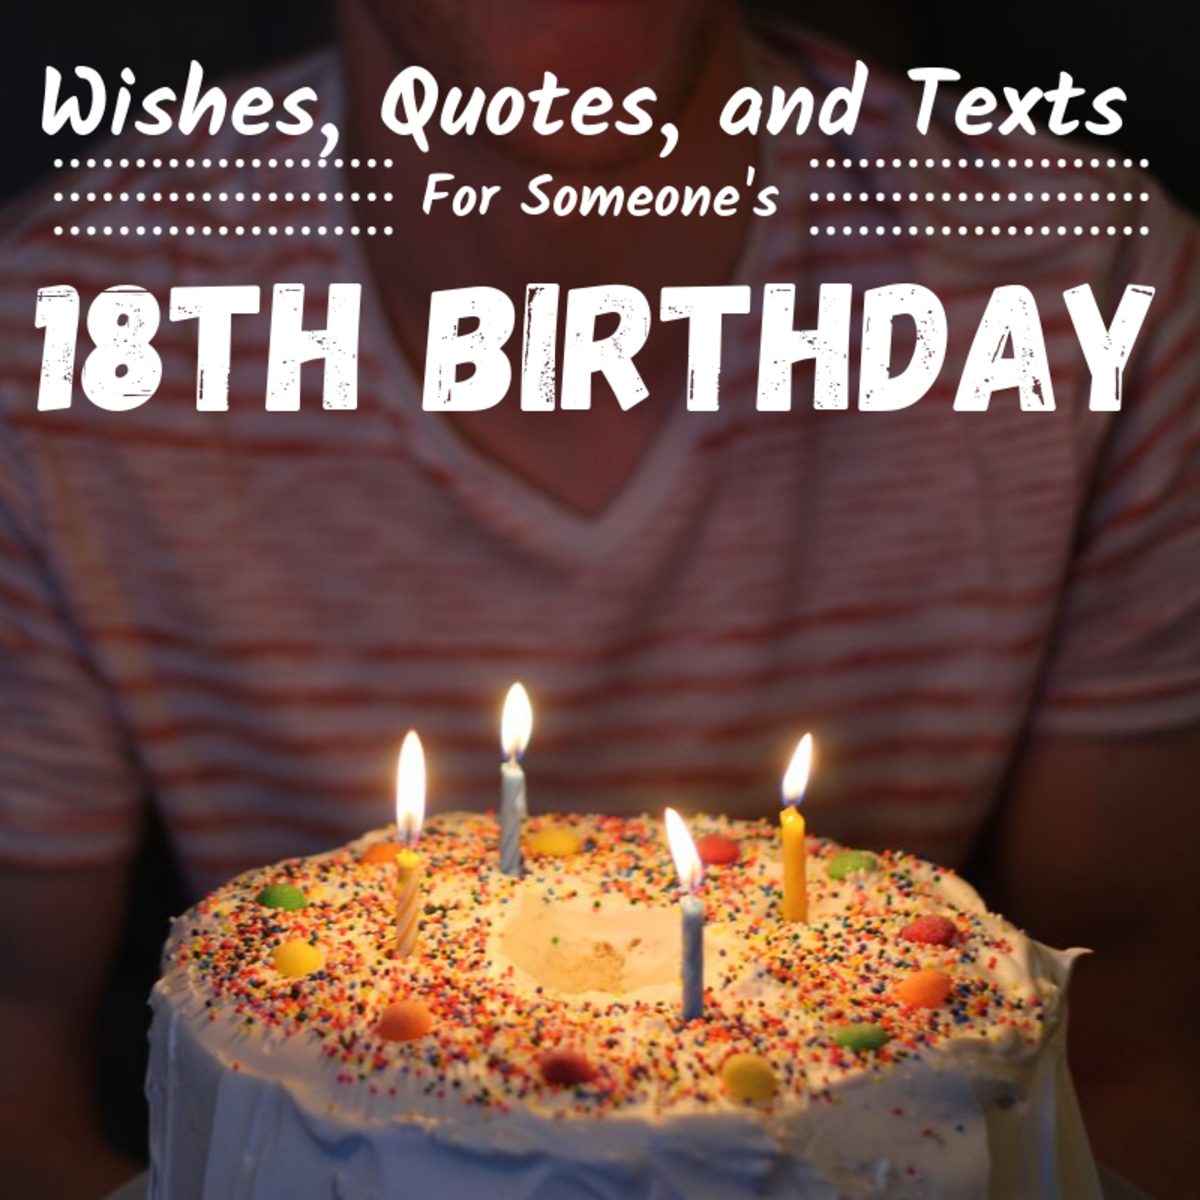 Peachy 18Th Birthday Wishes Texts And Quotes 152 Example Messages Funny Birthday Cards Online Alyptdamsfinfo